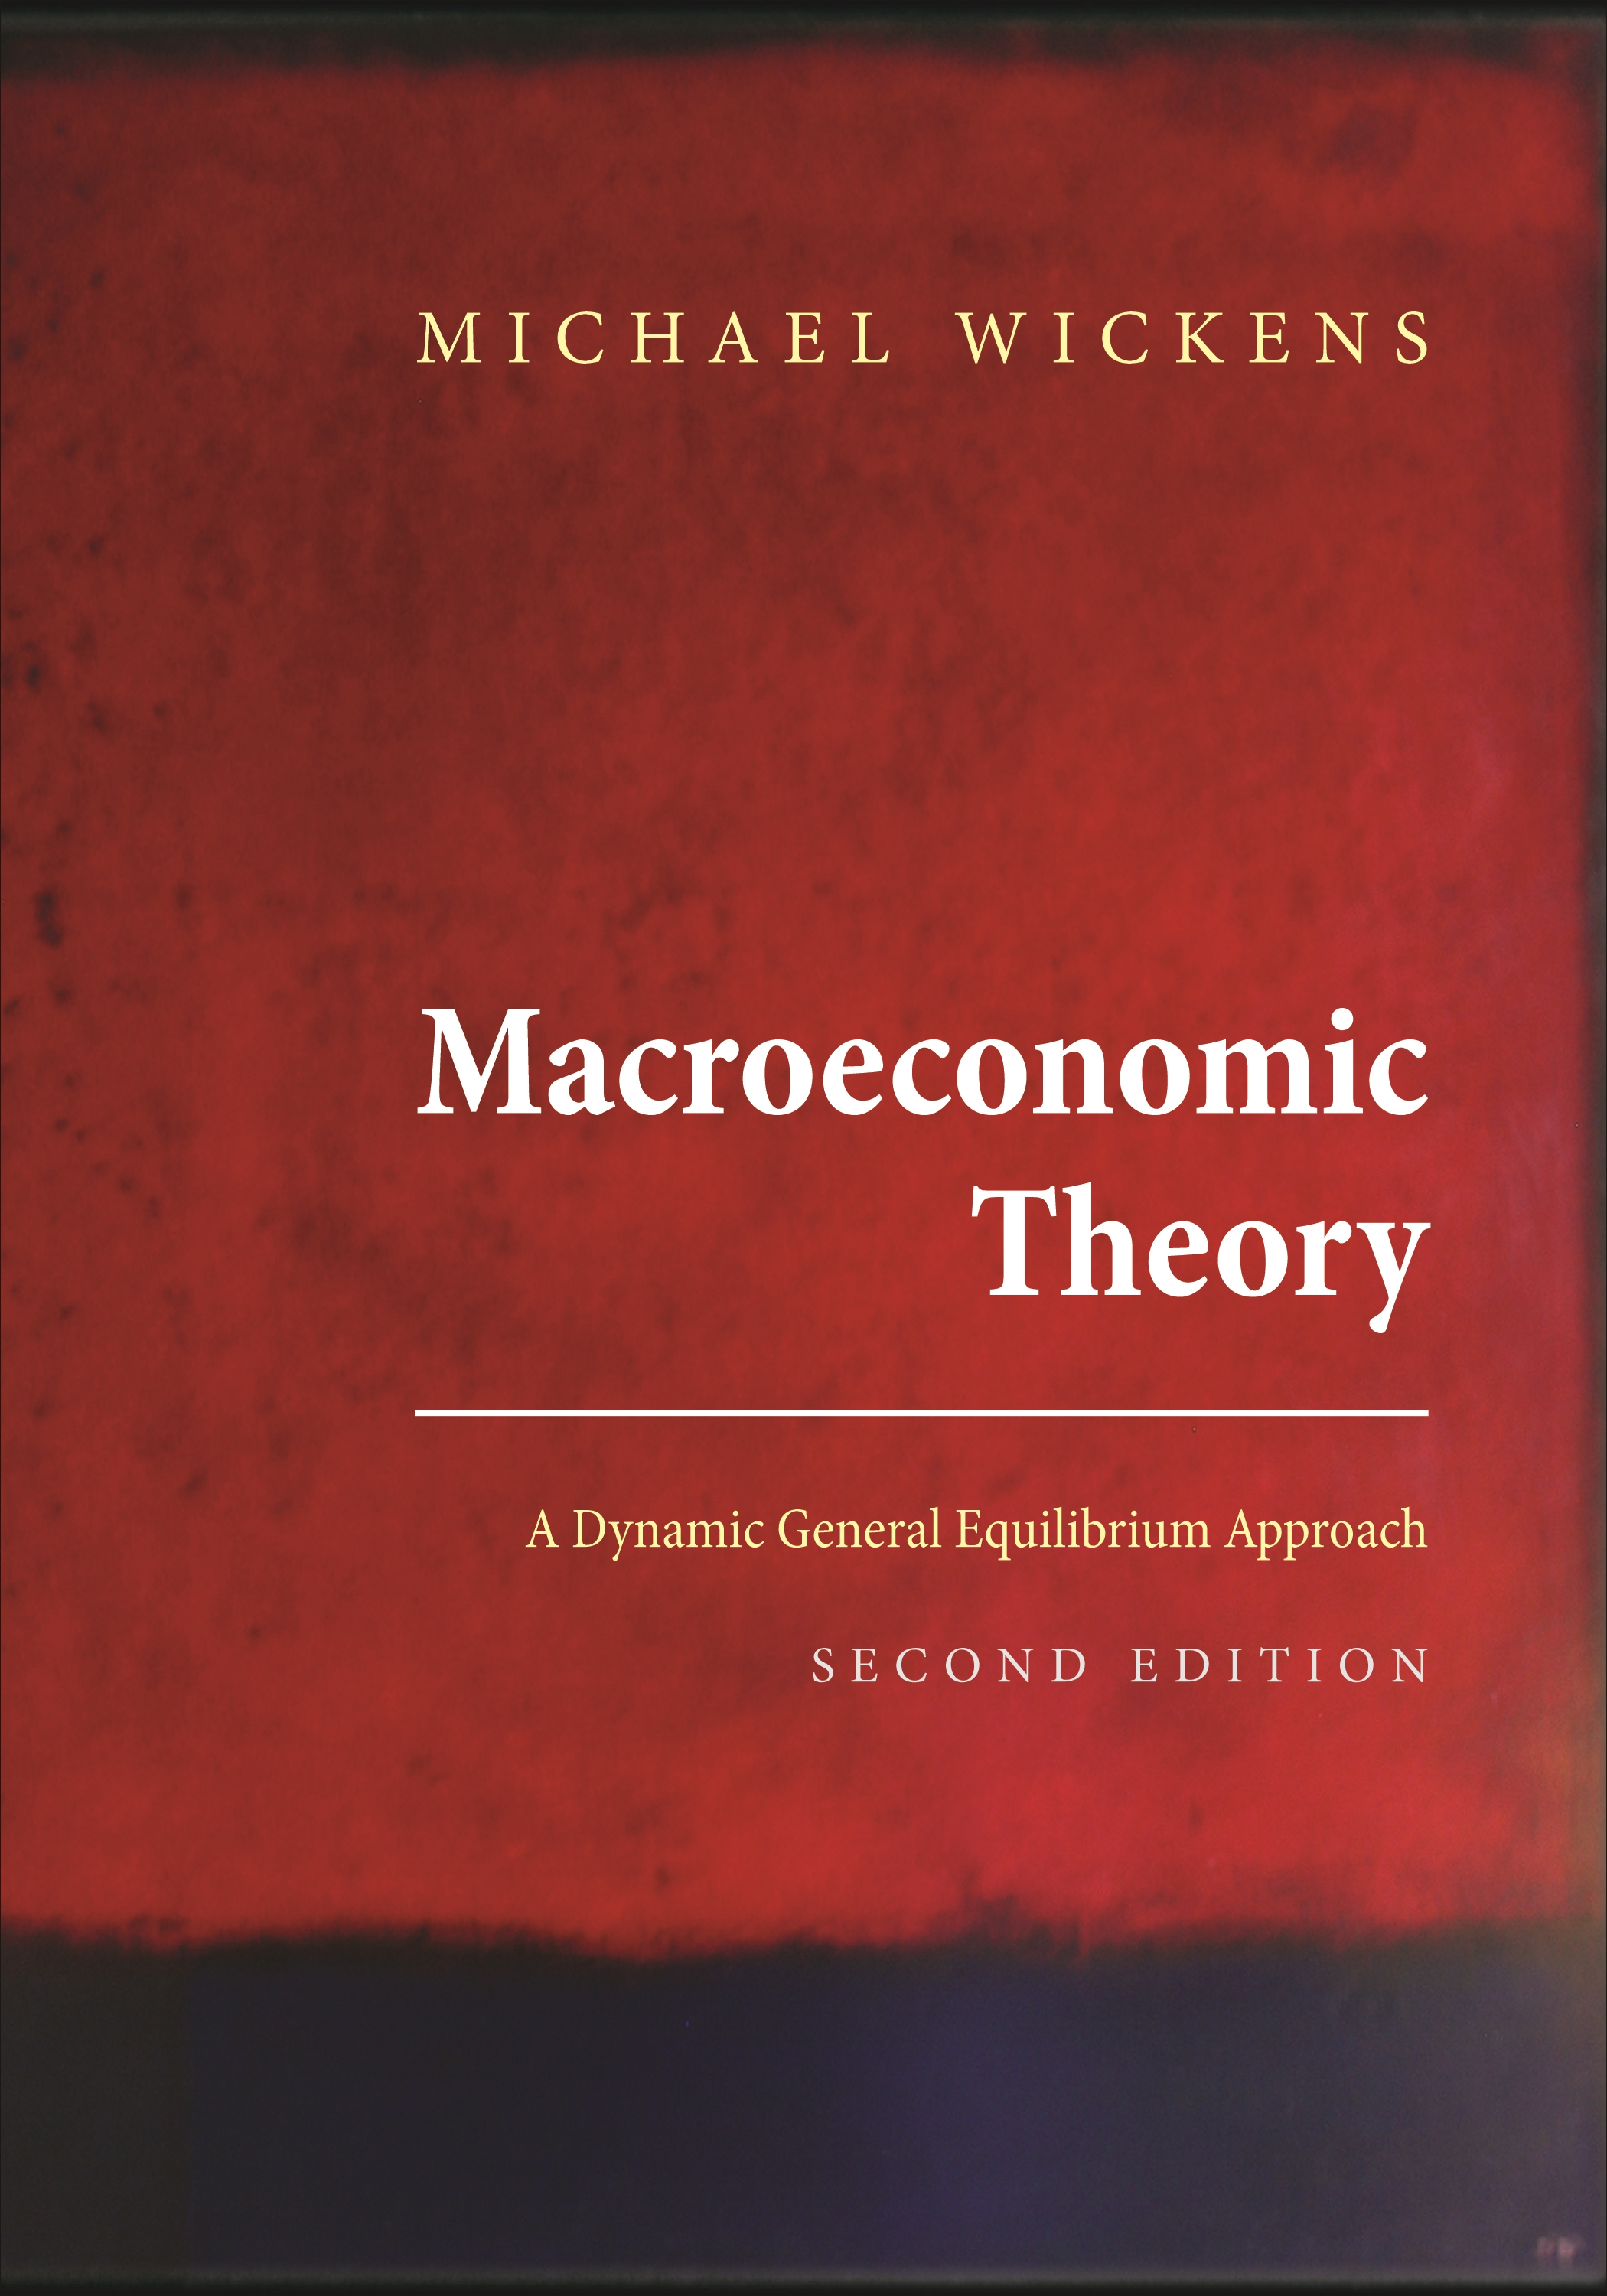 Download Ebook Macroeconomic Theory (2nd ed.) by Michael Wickens Pdf